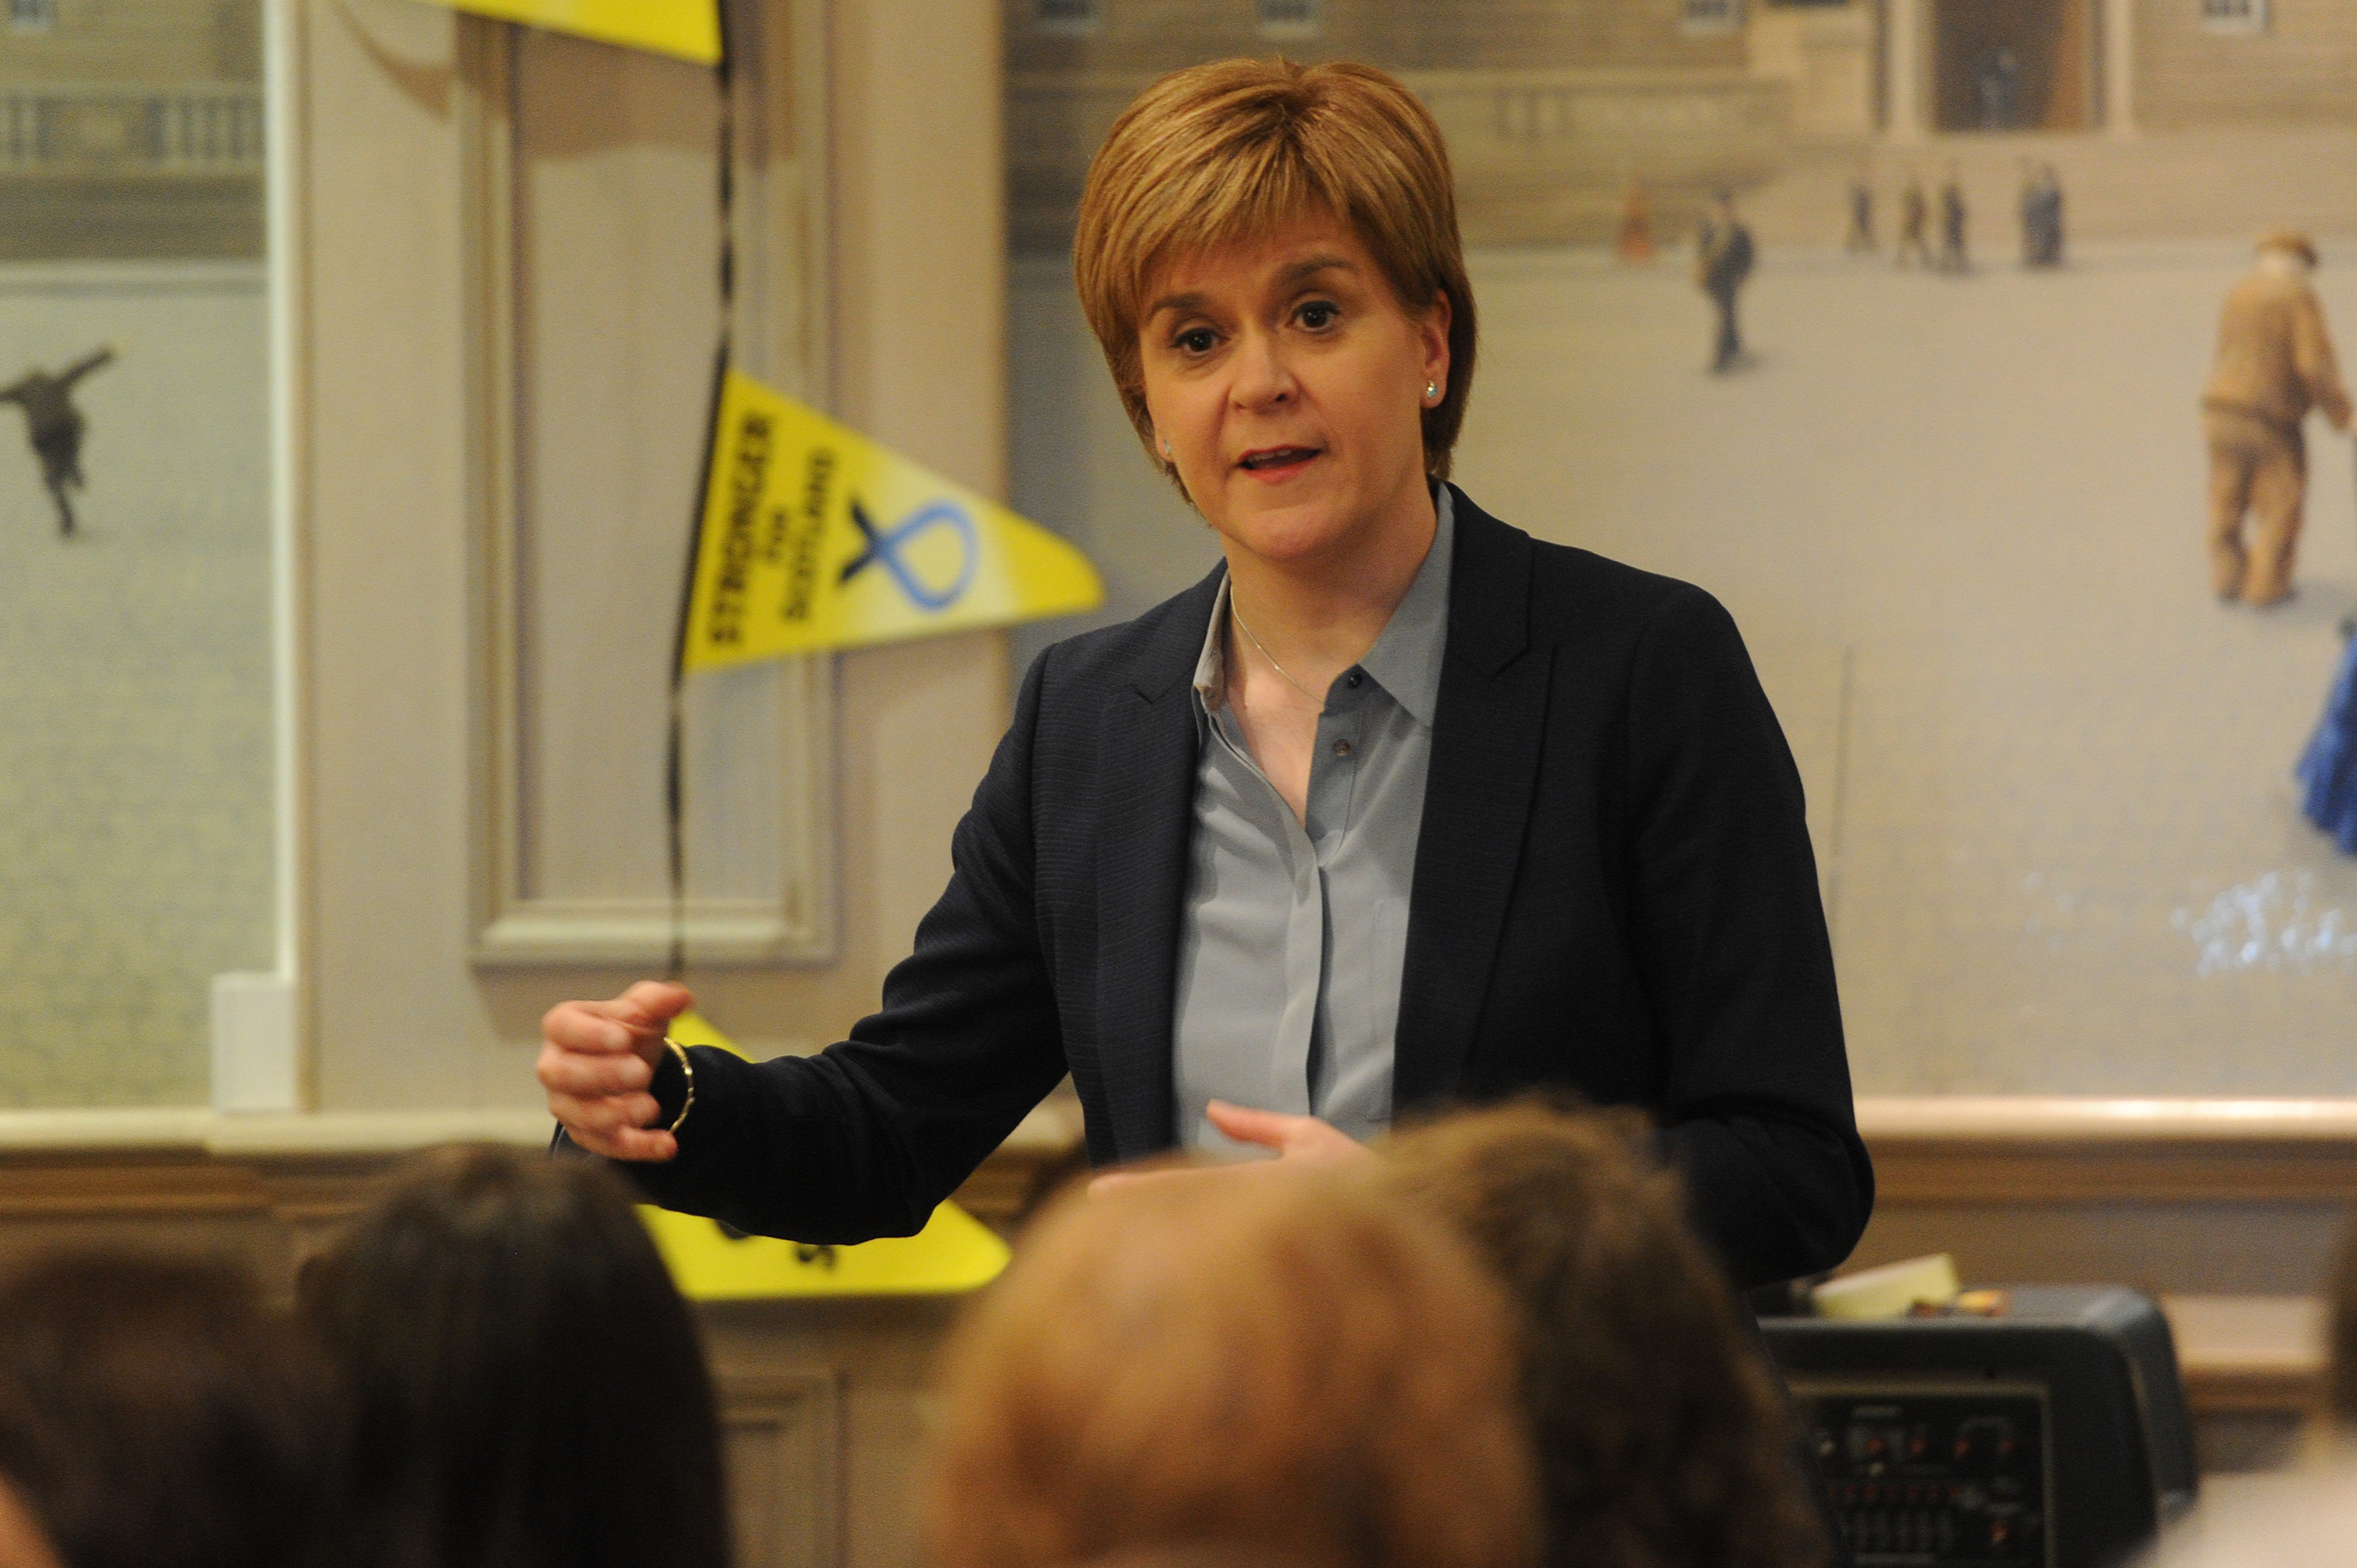 First Minister Nicola Sturgeon during the Q&A at the Queen's Hotel